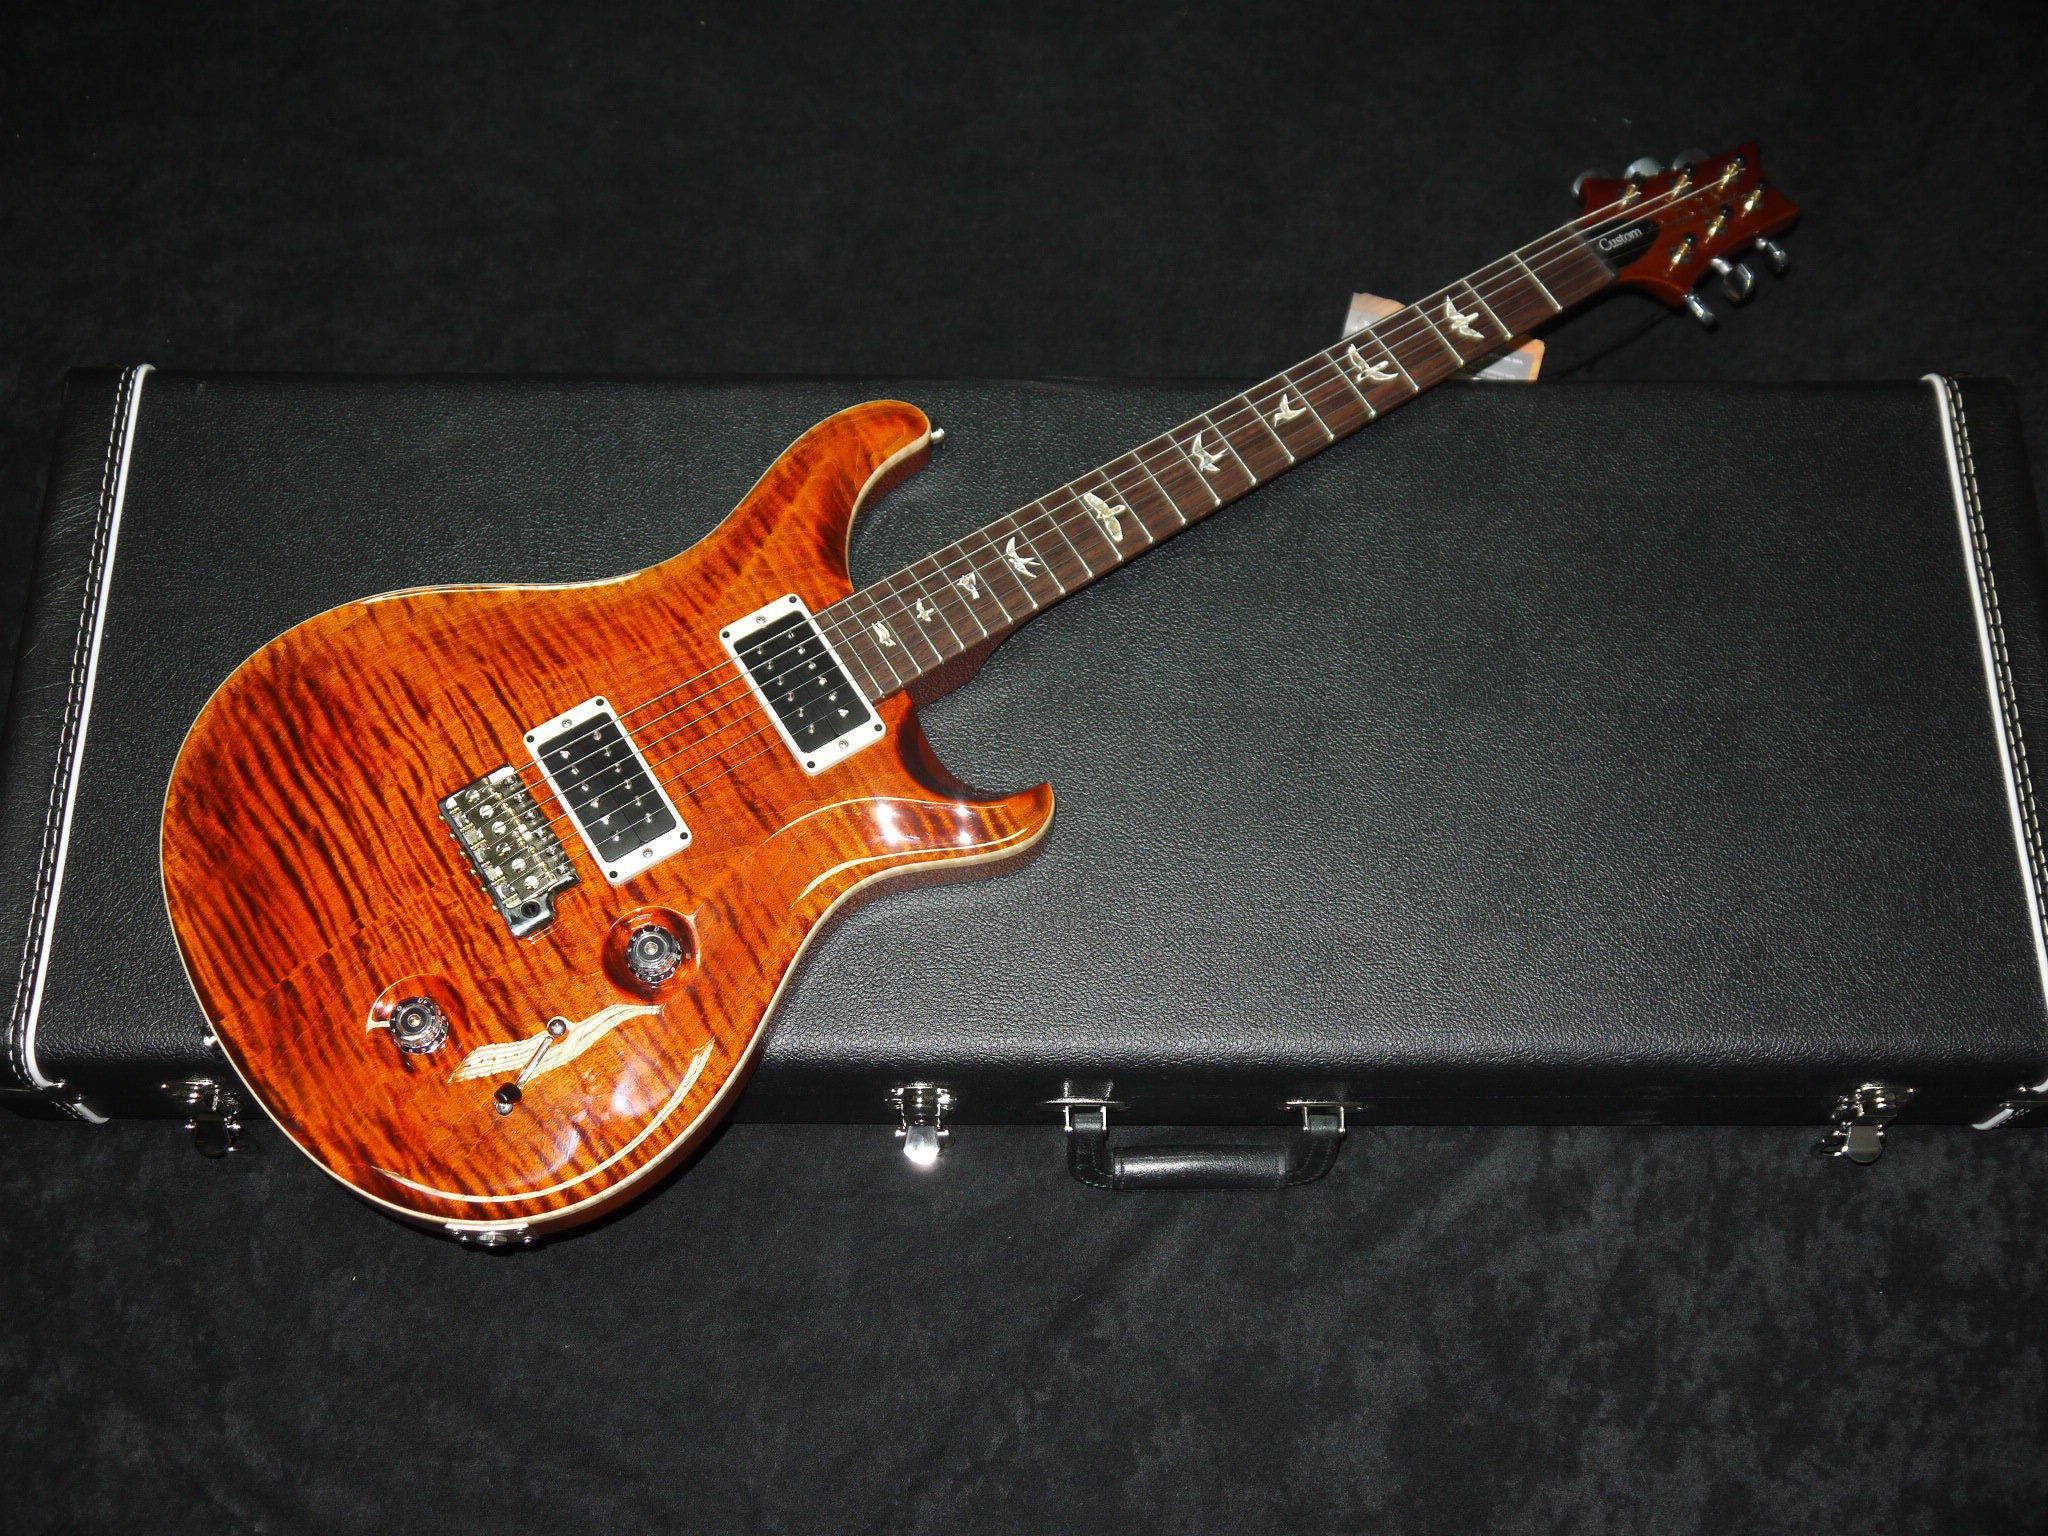 dating paul reed smith Free shipping on orders over $99 (lower 48 states us only) sort by.